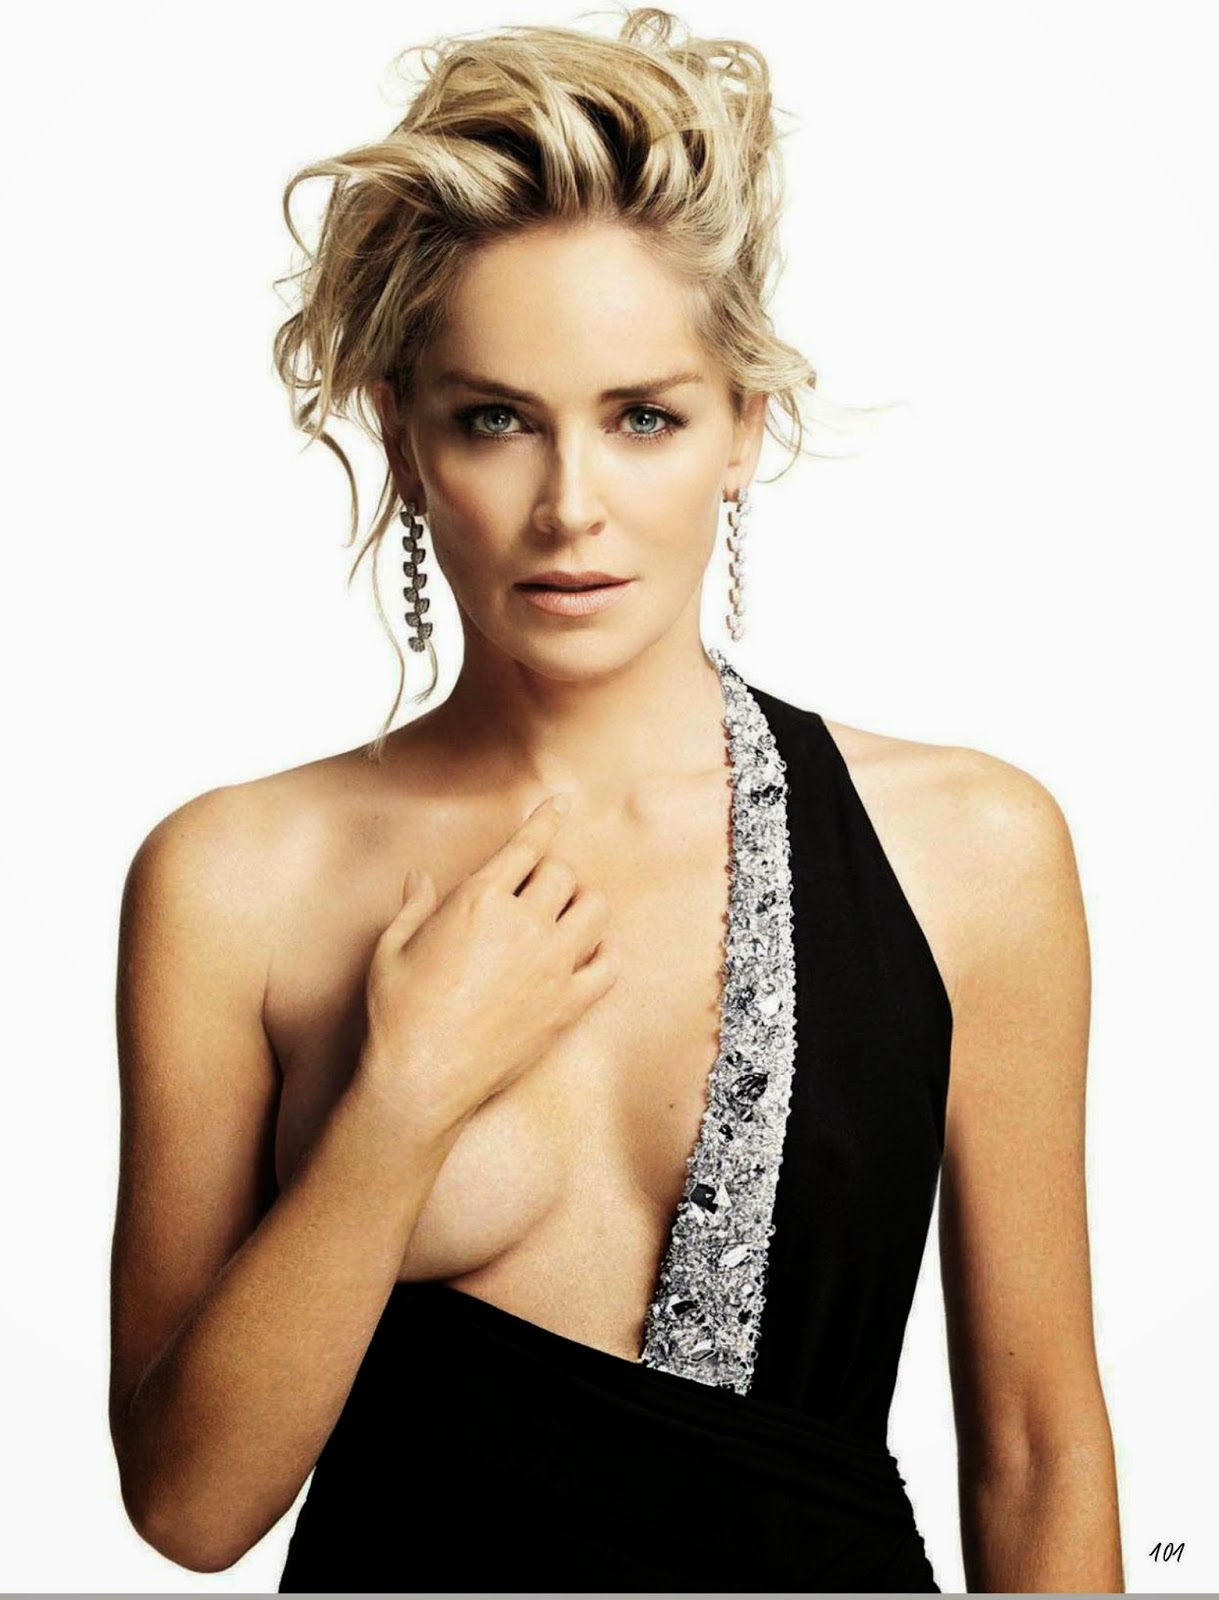 sharon stone holding breast